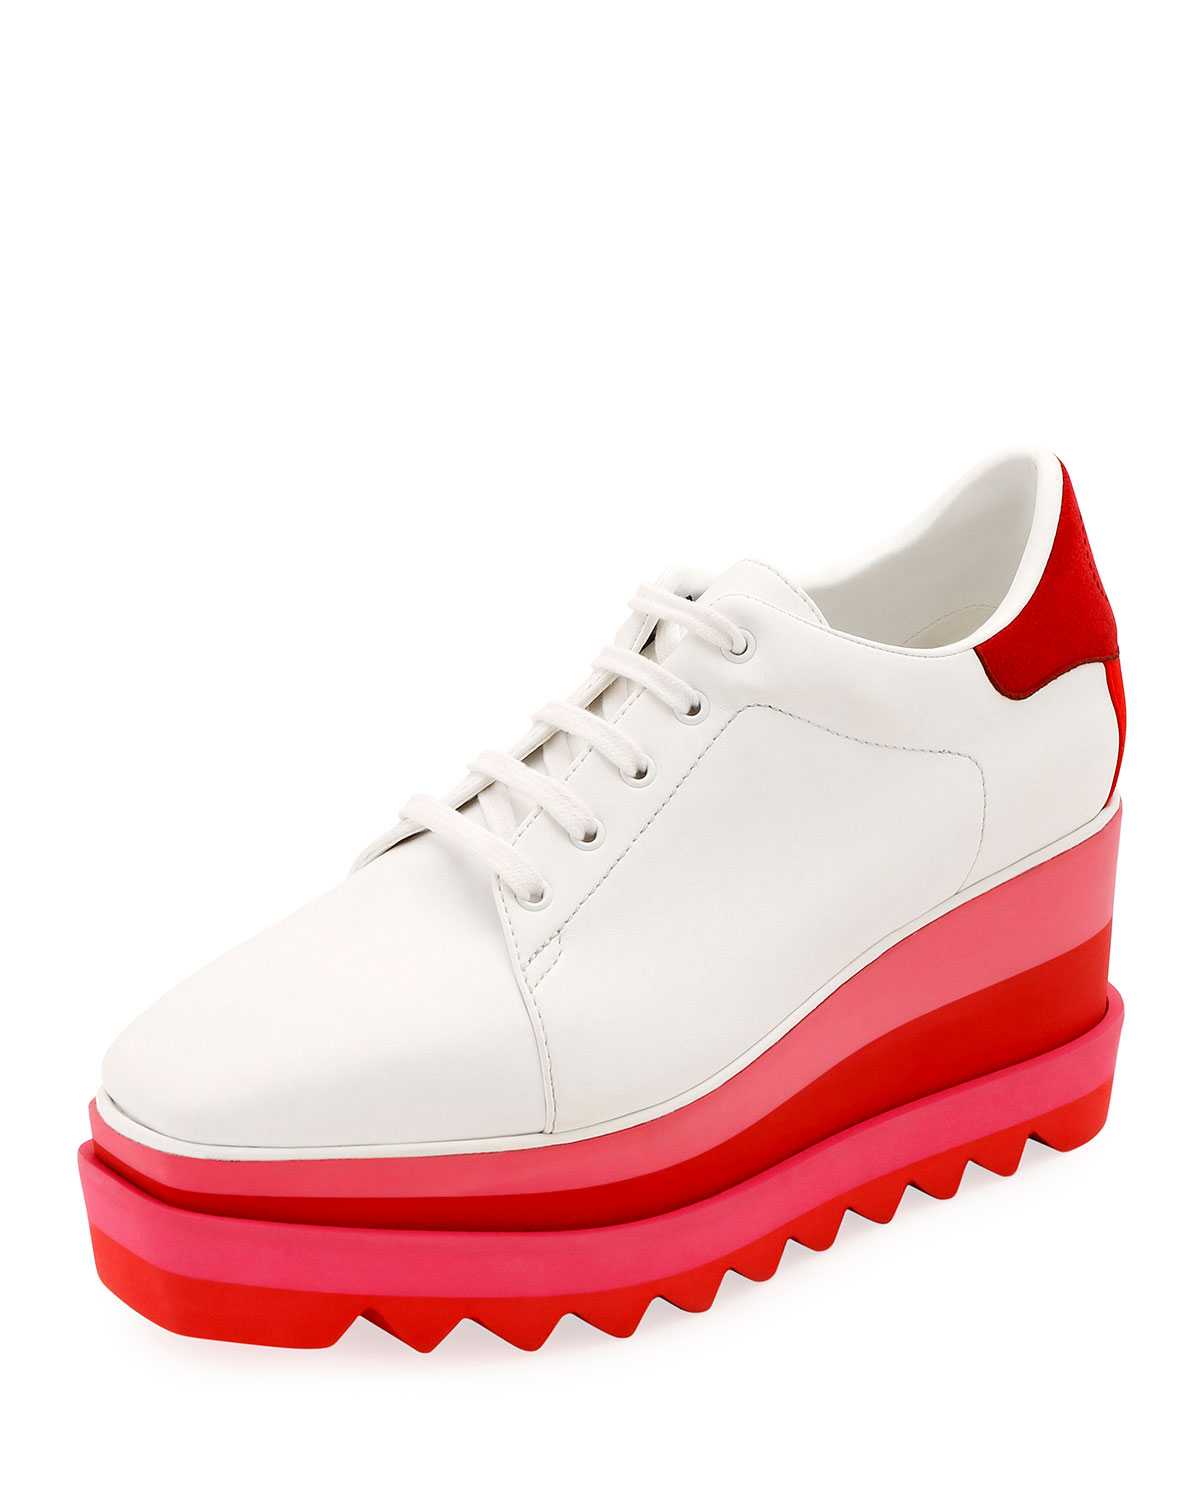 Sneakelyse Lace-Up Bright Sneakers in White